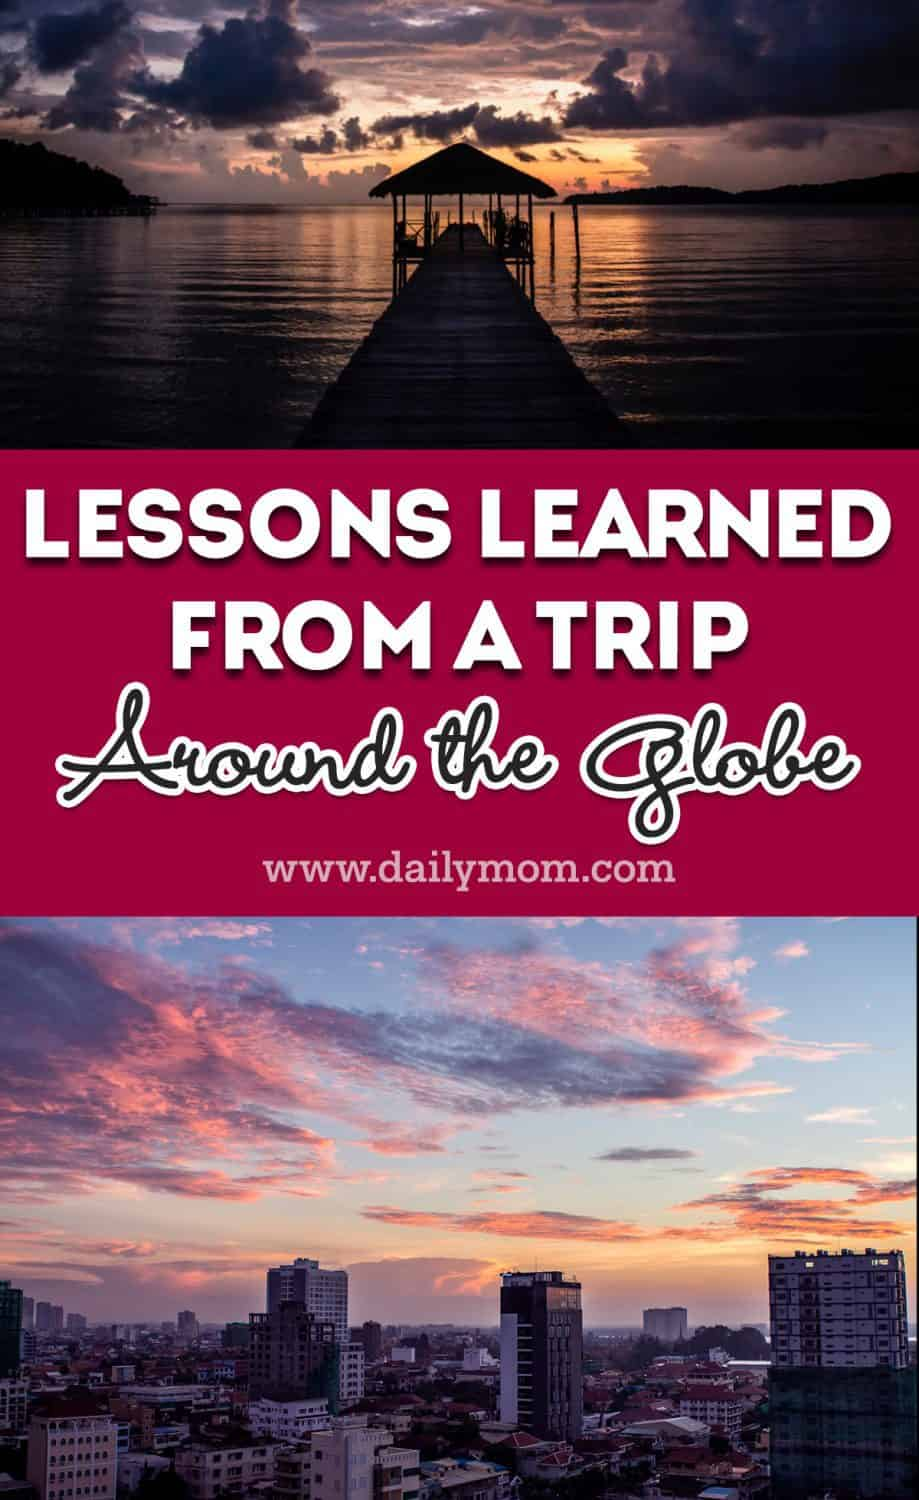 Lessons Learned From a Year Around the Globe 9 Daily Mom Parents Portal